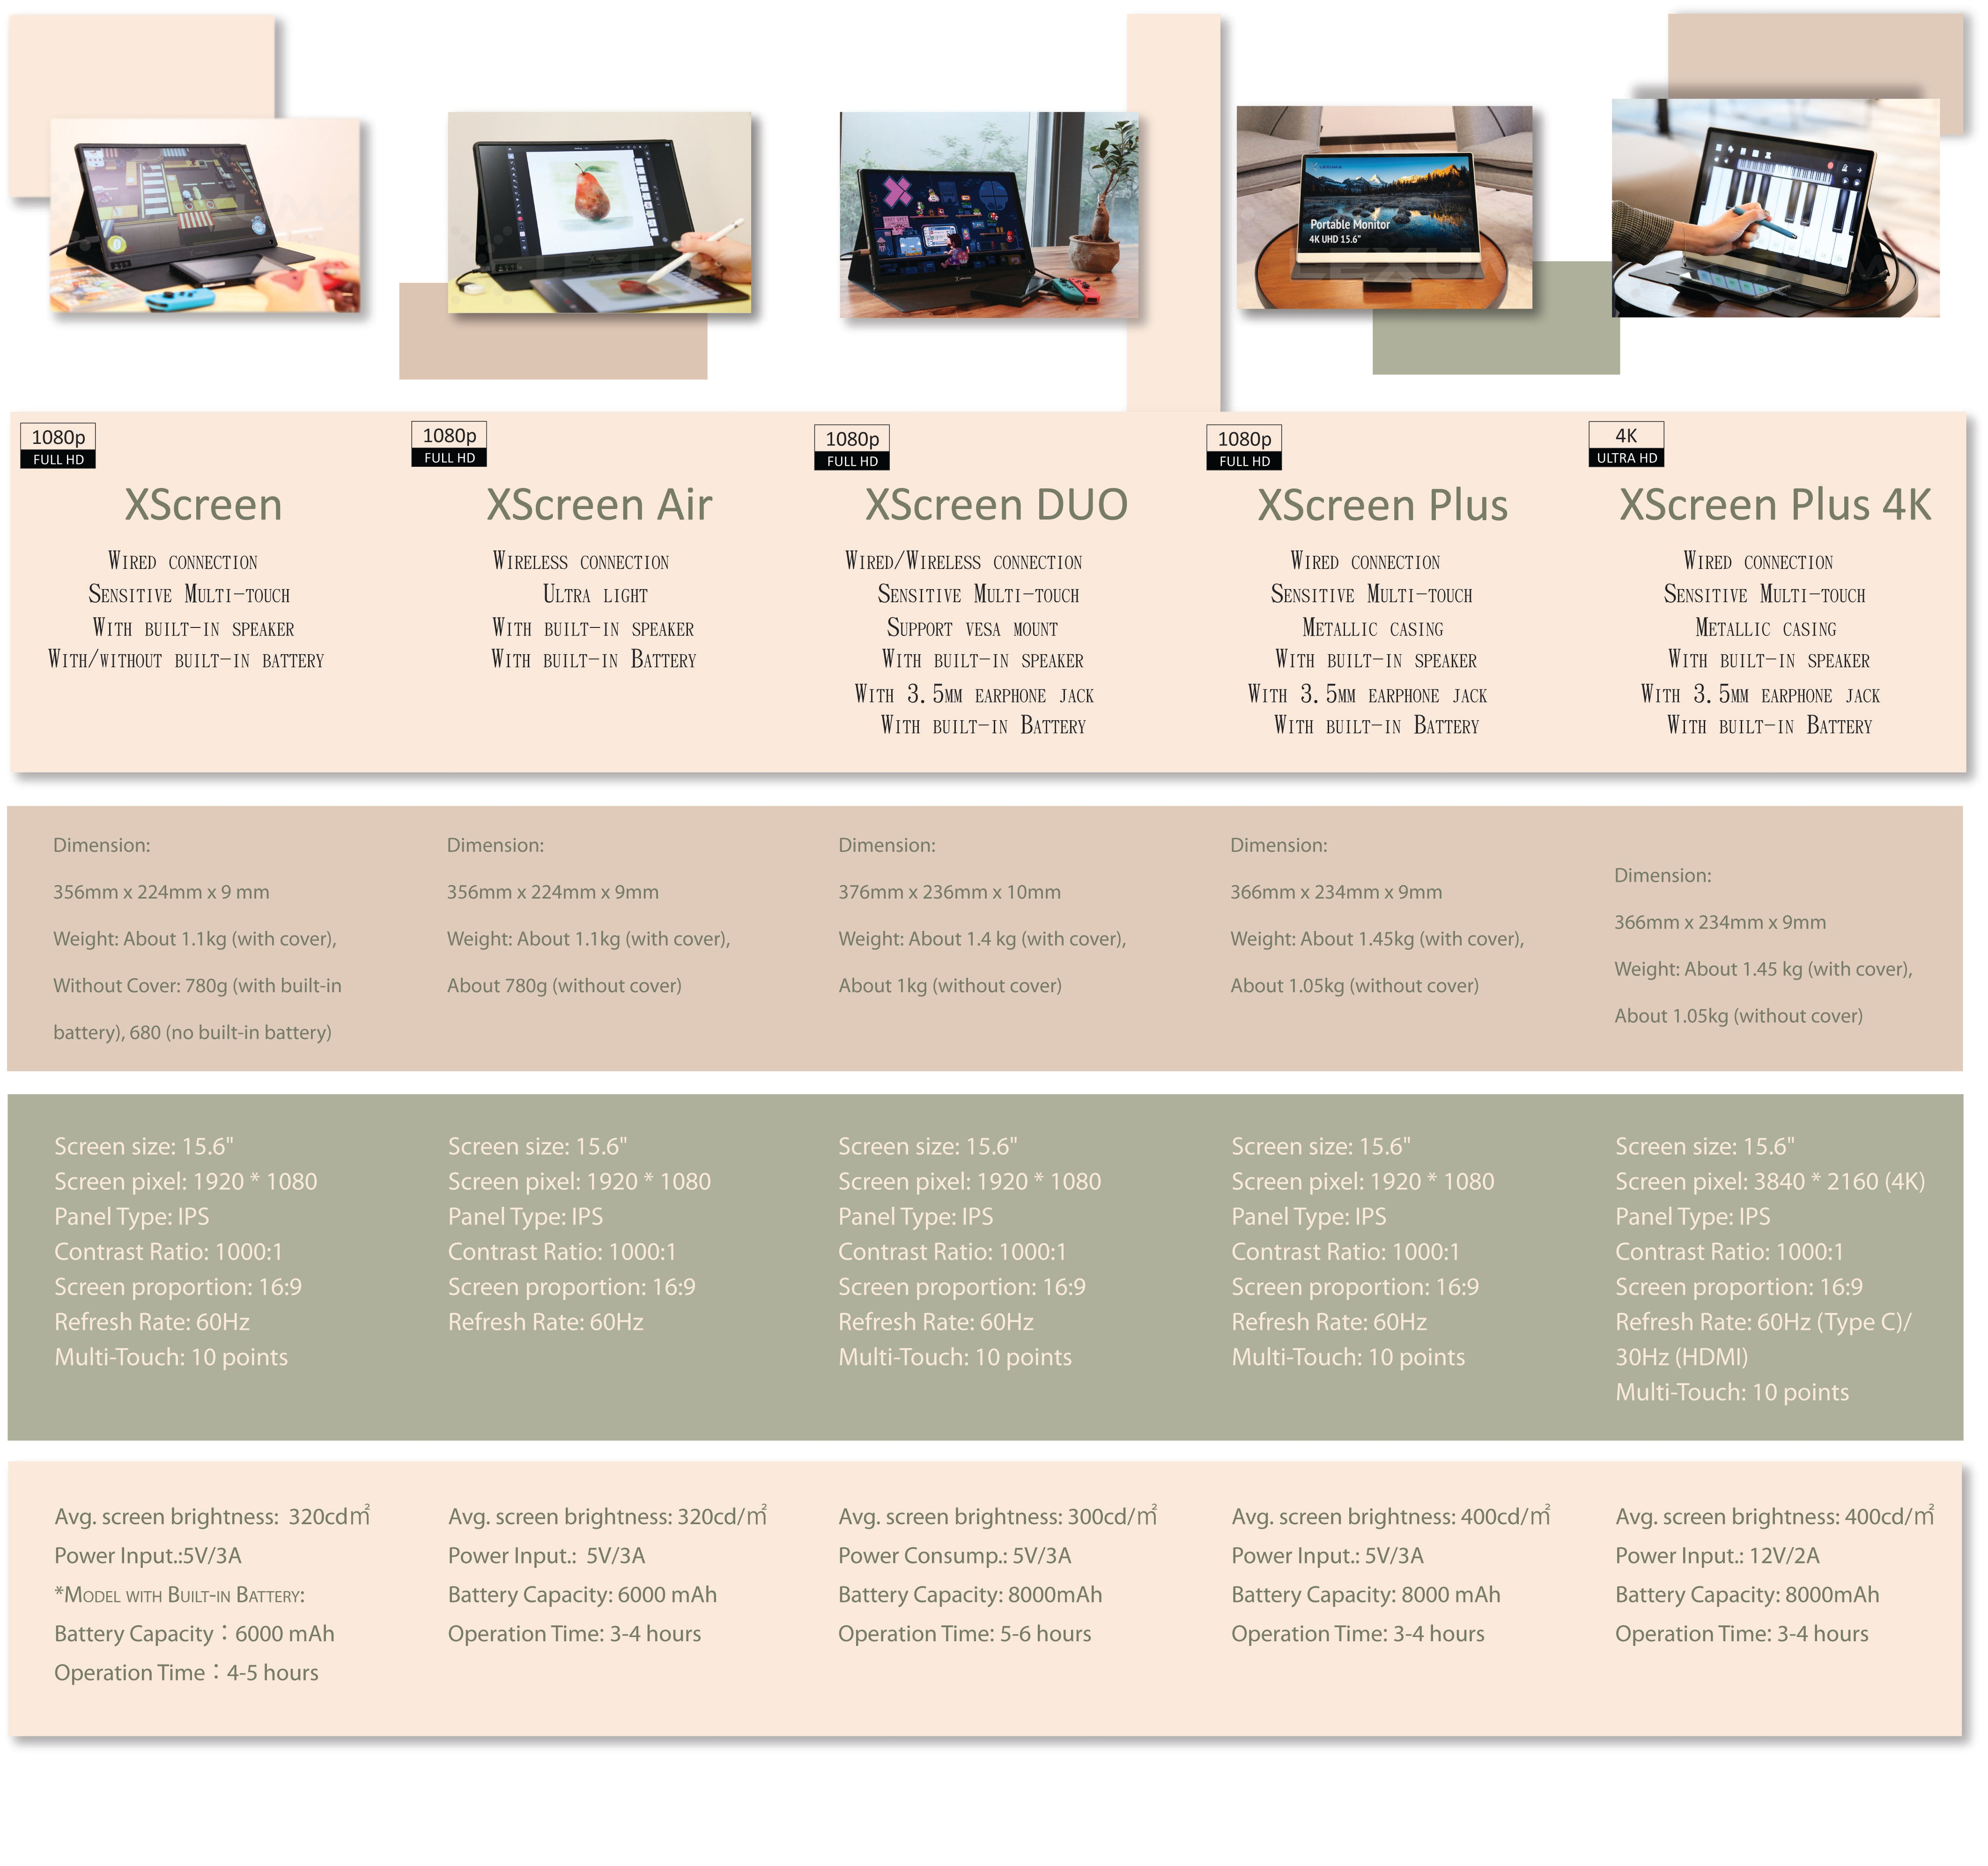 Xscreen potable monitor 15.6 screen differences between different models